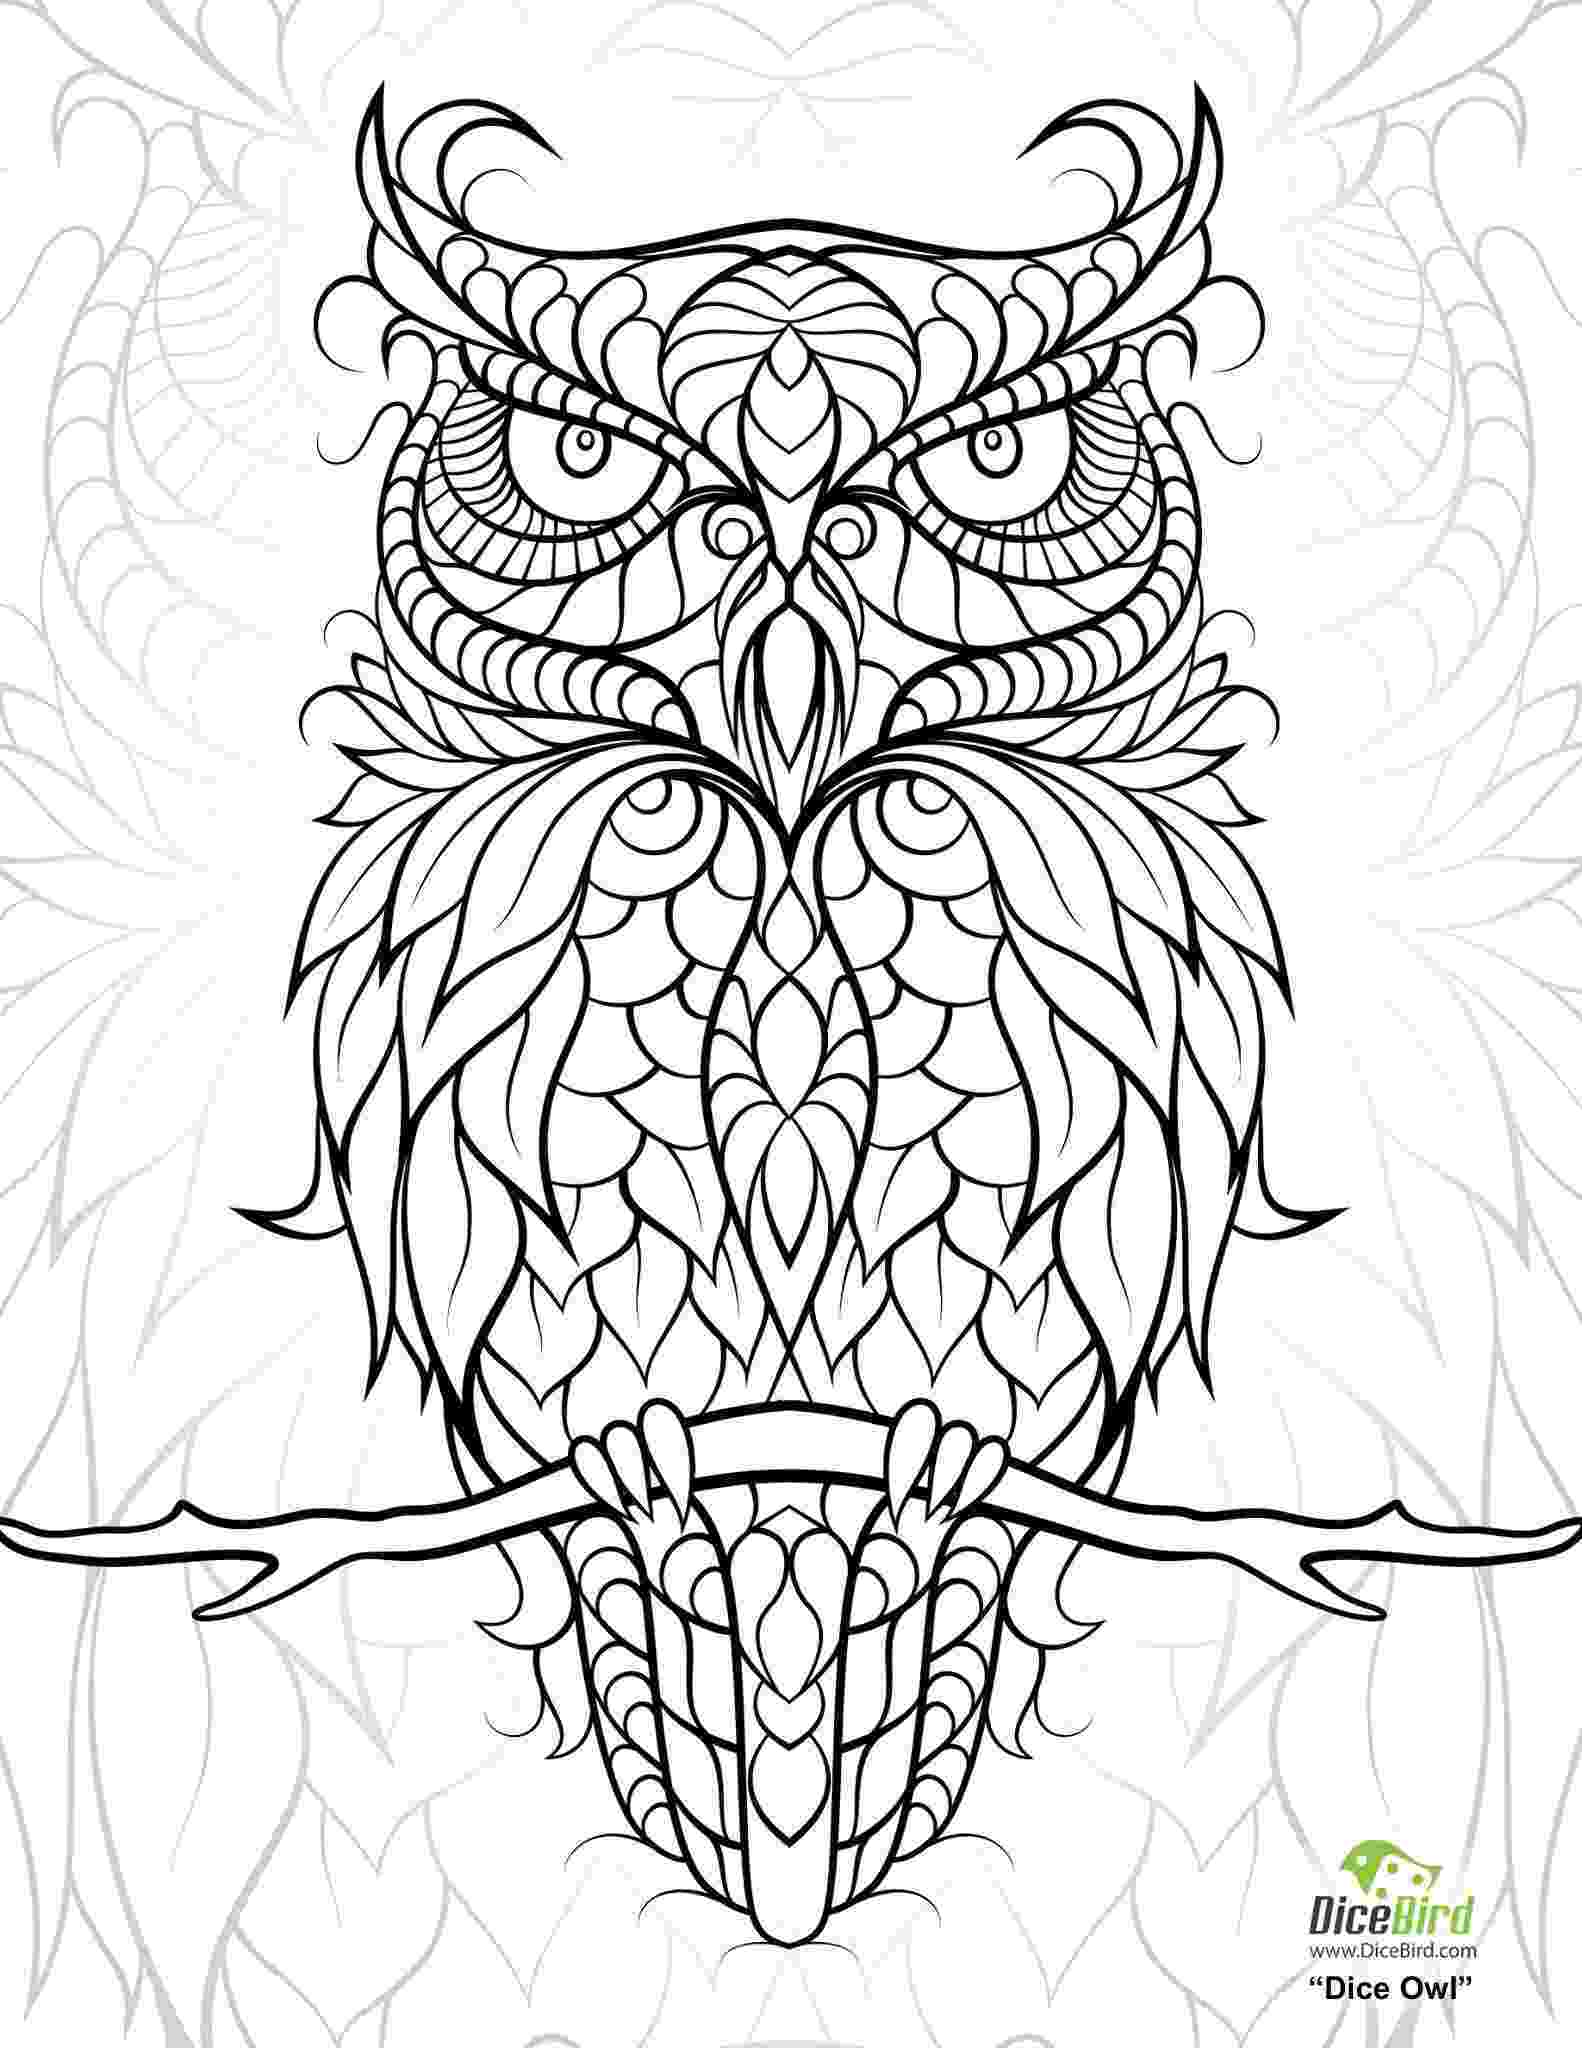 coloring pages for adults with owls diceowl free printable adult coloring pages owl coloring coloring with for owls adults pages